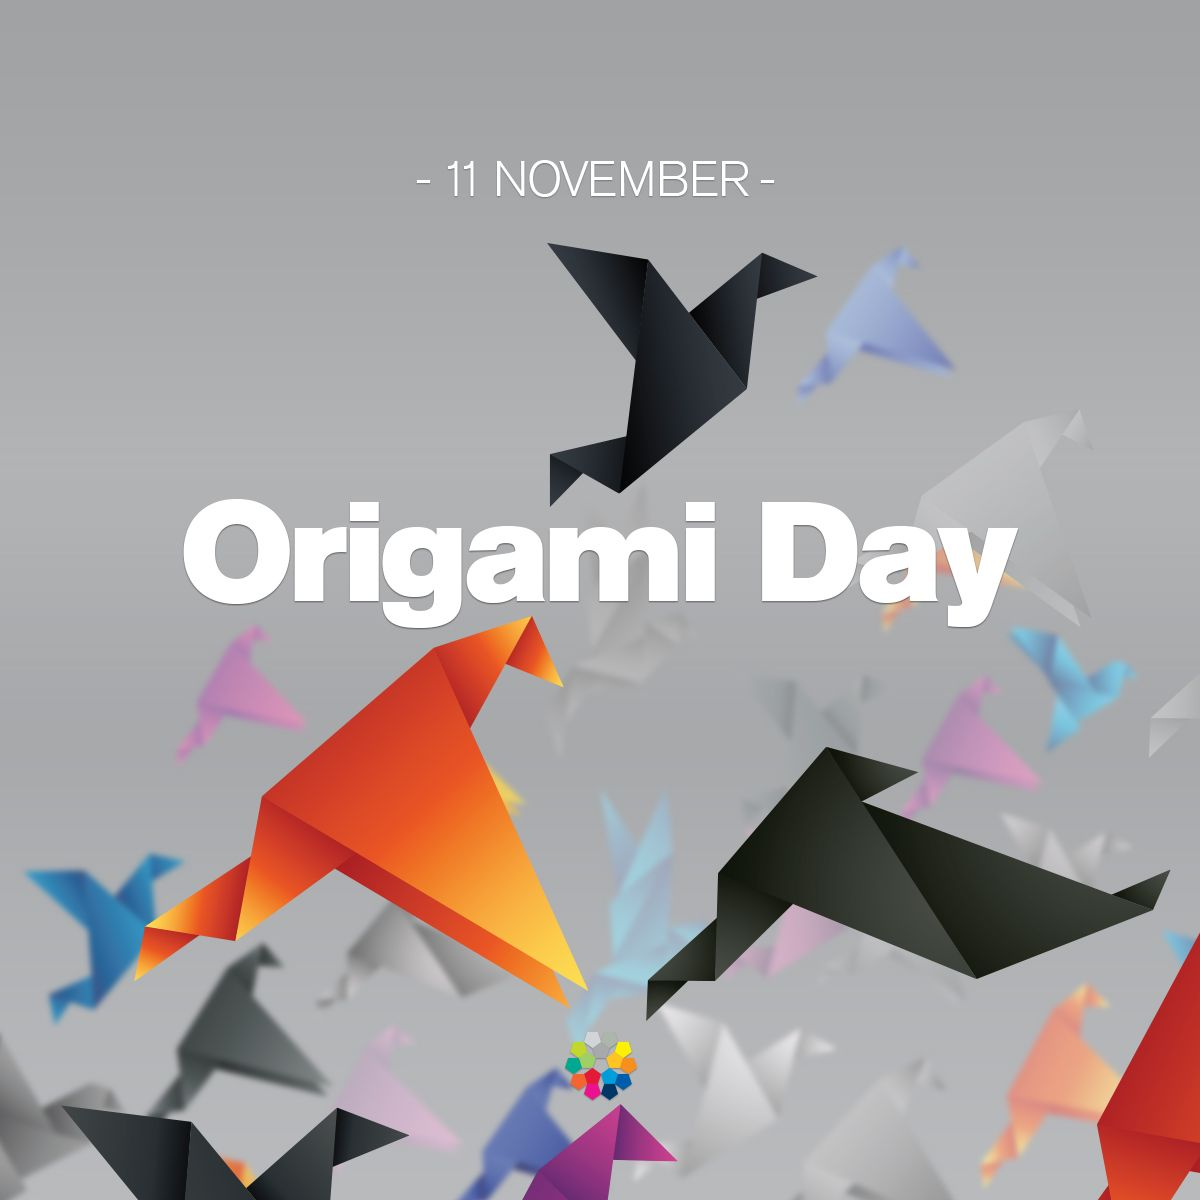 Origami Day Promotes The Paper Crane As An International Symbol Of